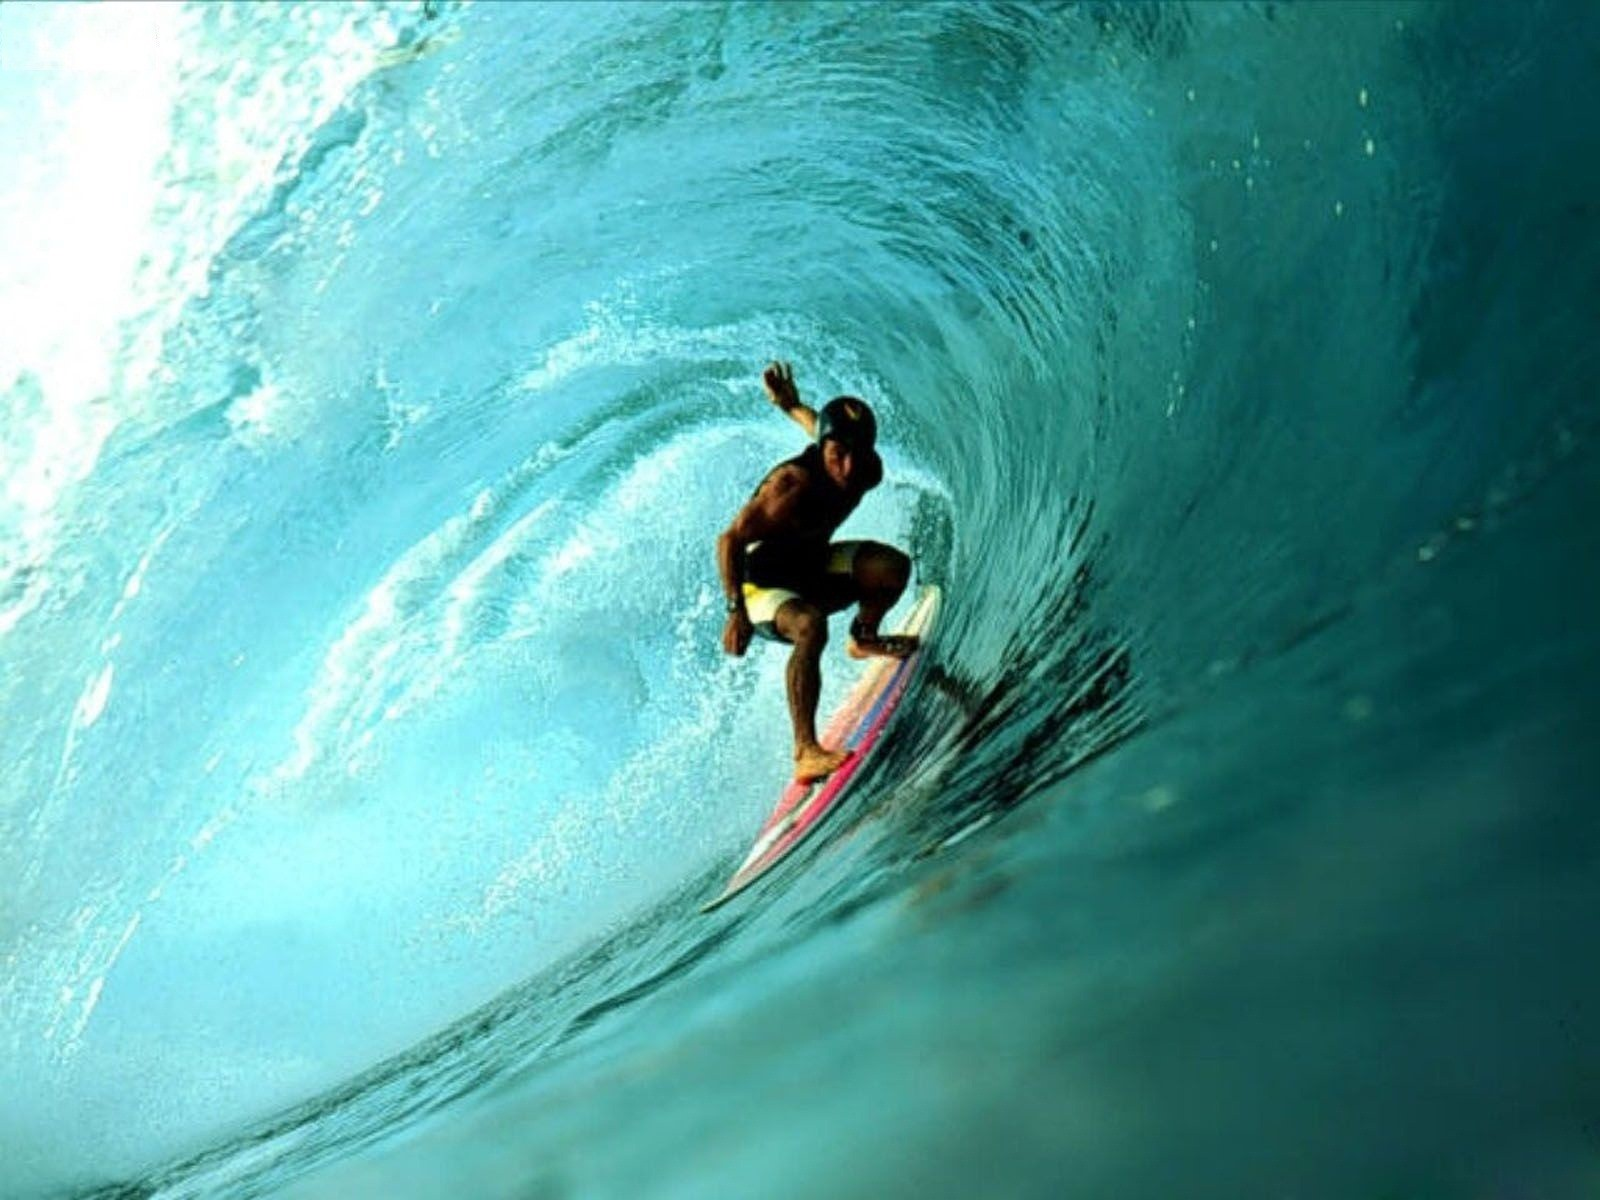 Man Surfing Wallpapers HD Wallpapers 1600x1200